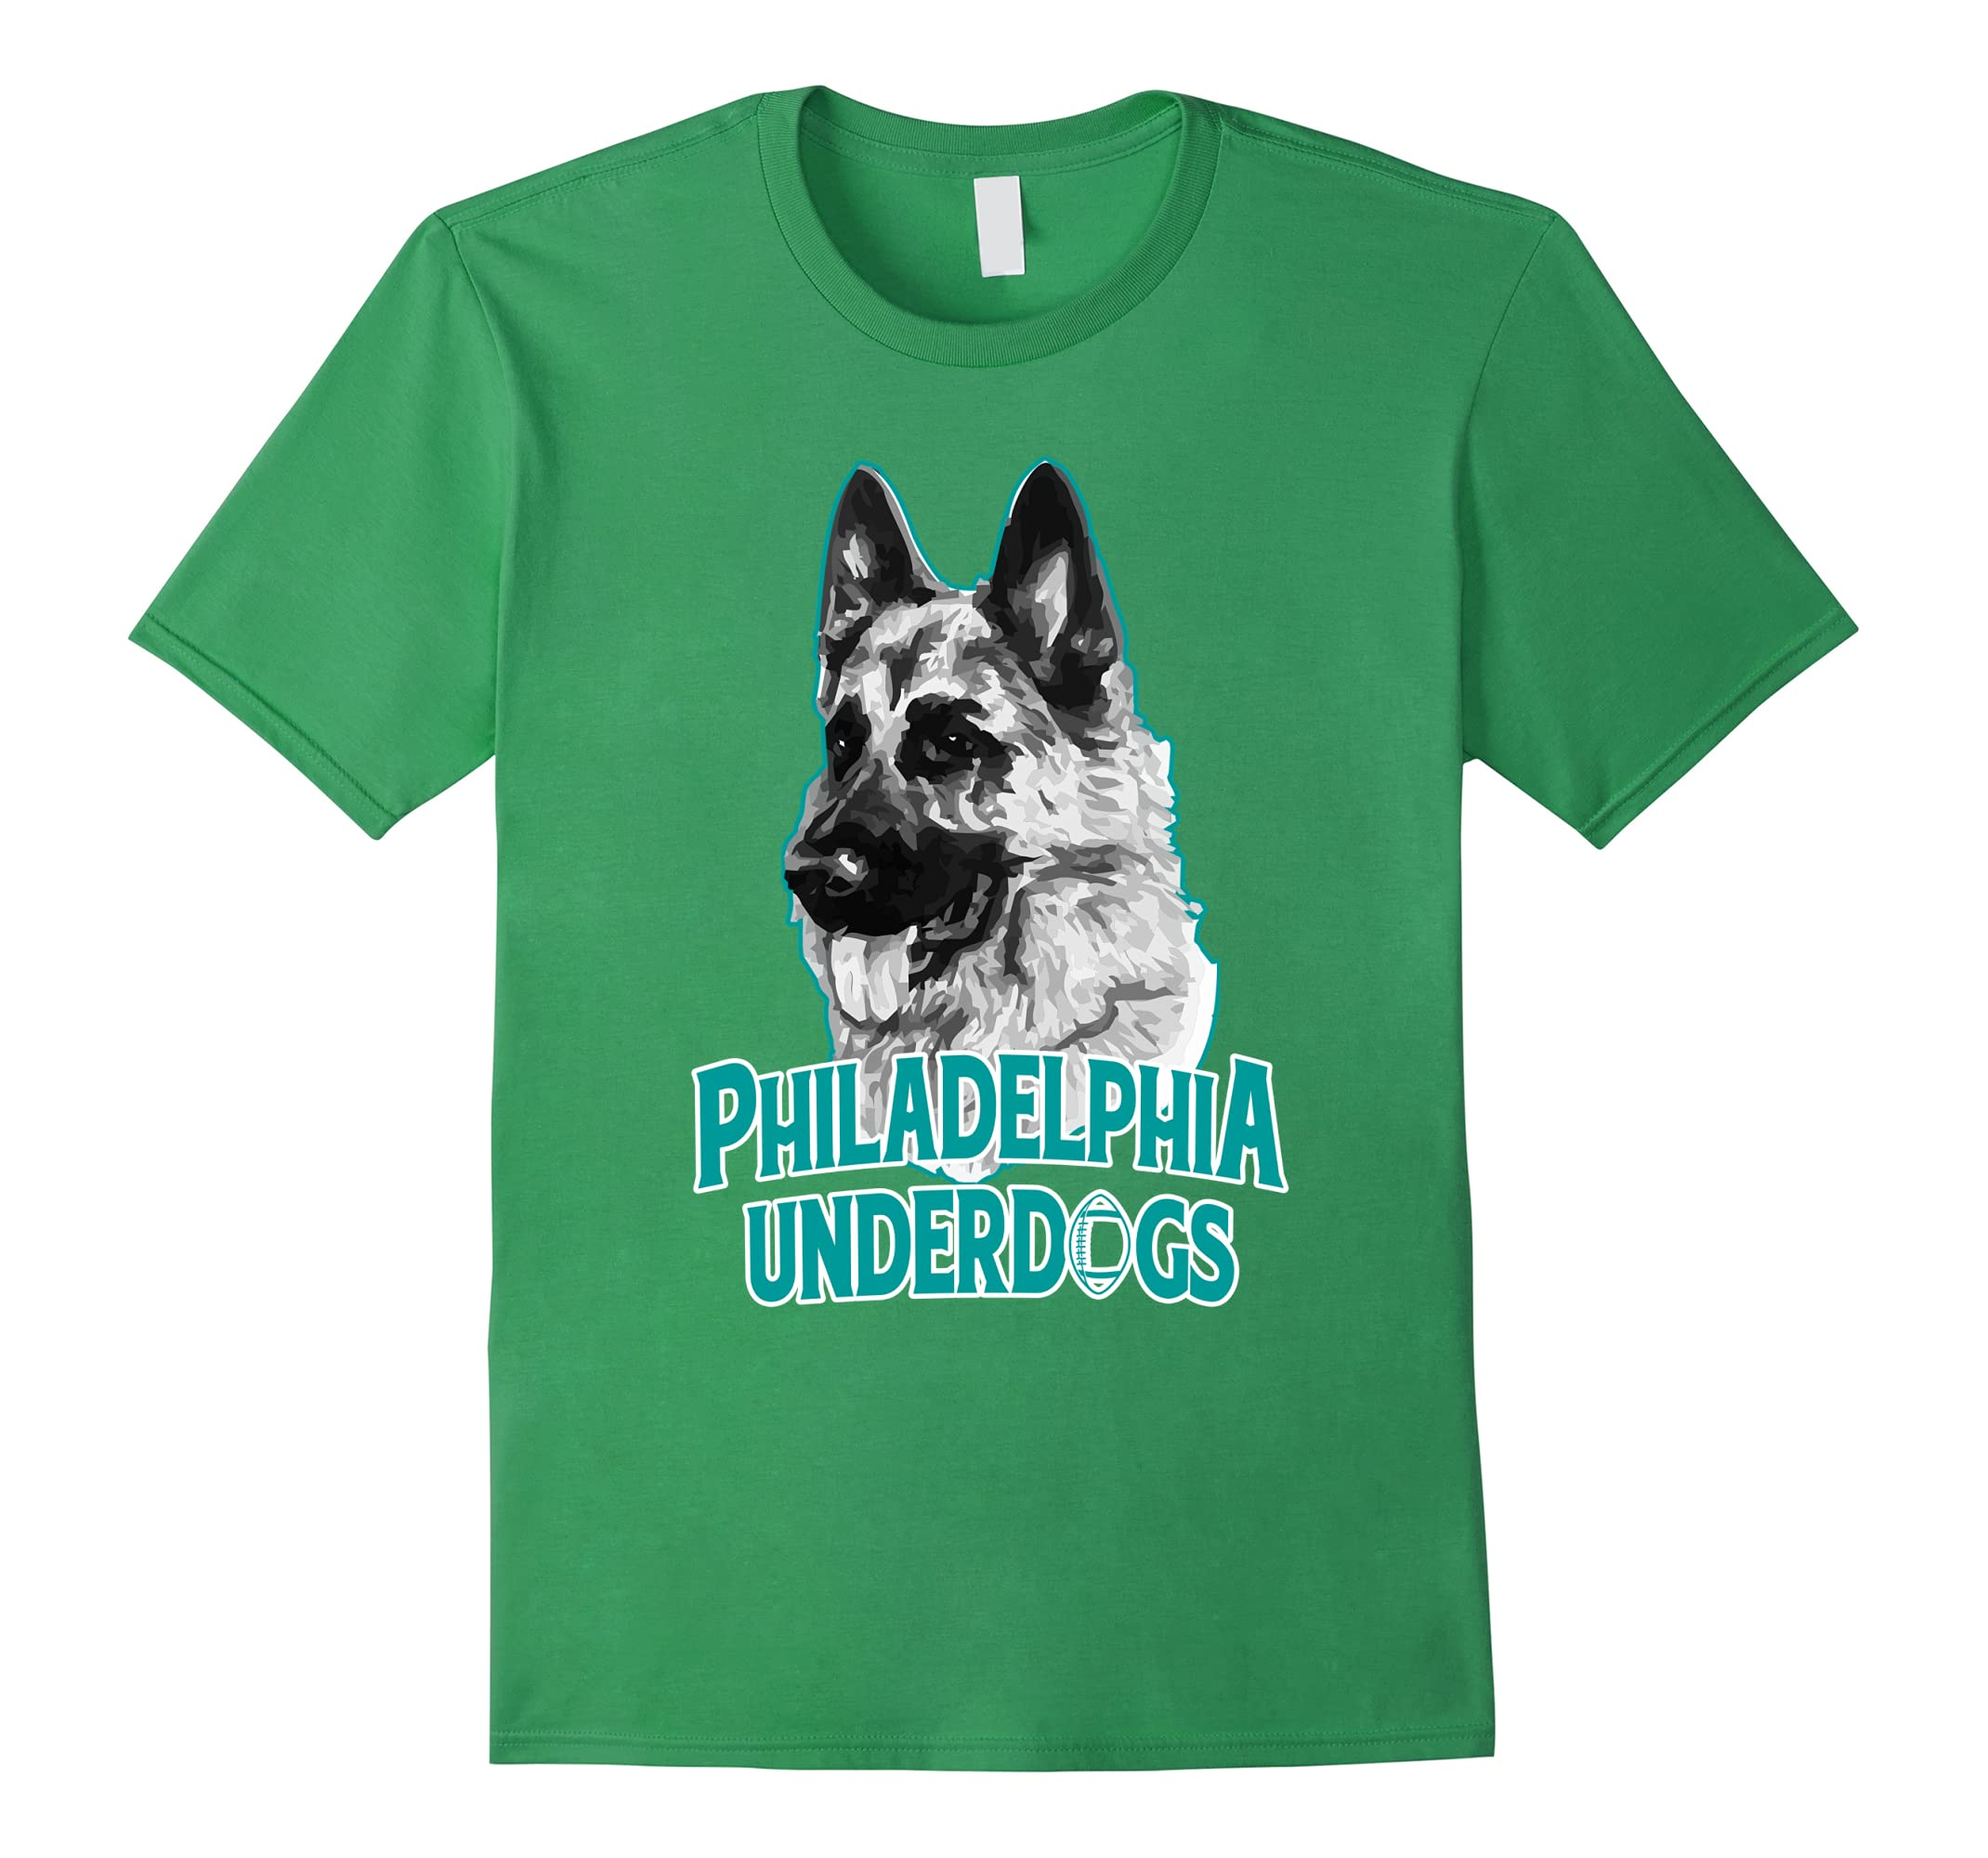 Philadelphia Underdog 2018 Celebration T-Shirt-RT